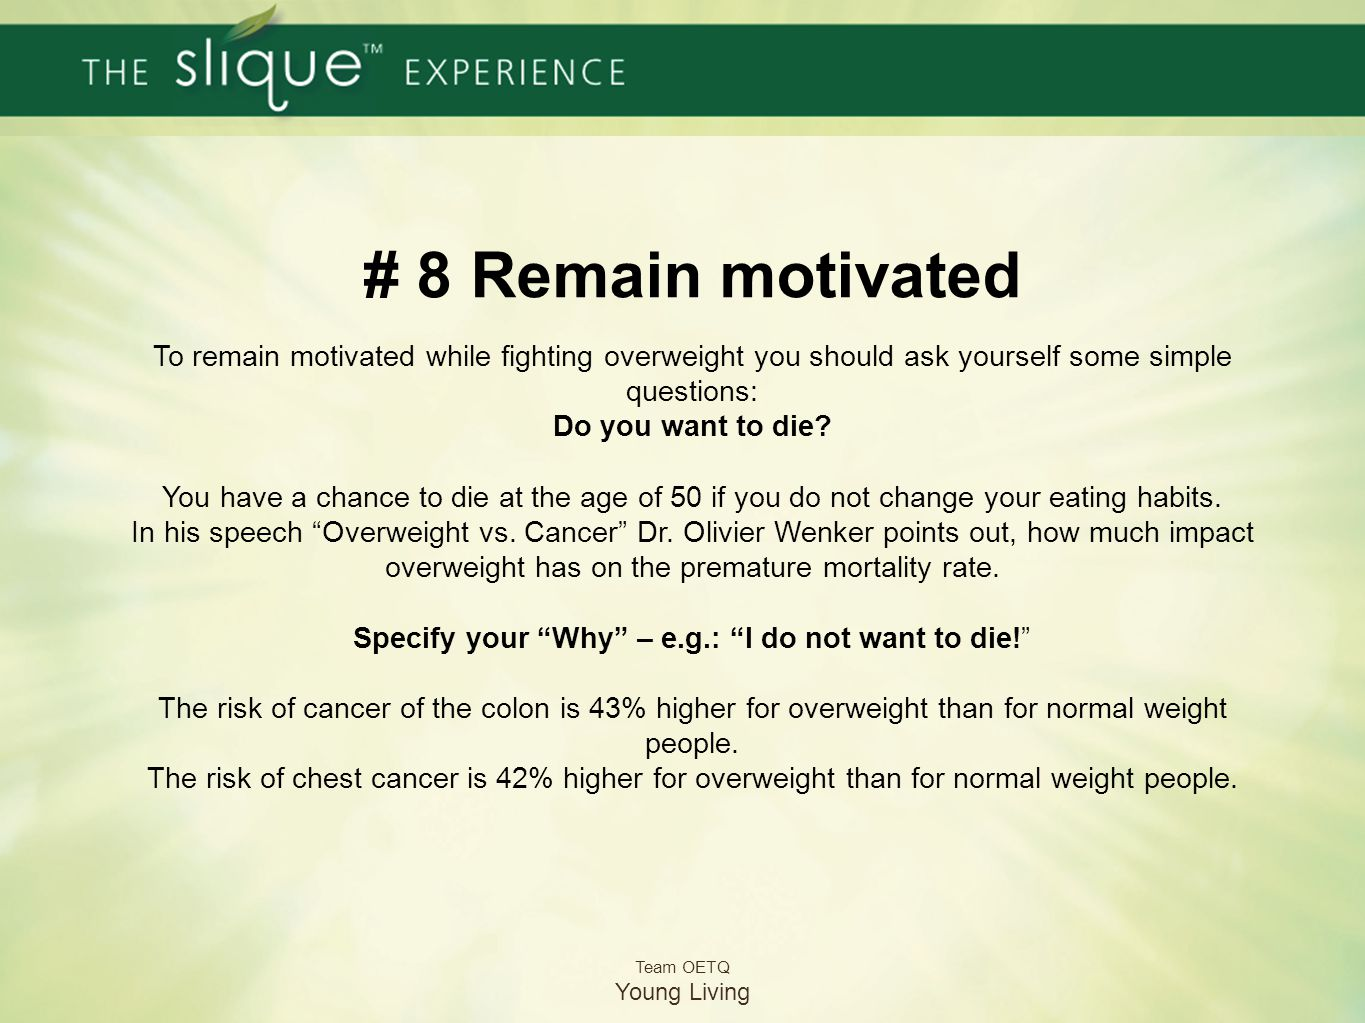 # 8 Remain motivated To remain motivated while fighting overweight you should ask yourself some simple questions: Do you want to die You have a chance to die at the age of 50 if you do not change your eating habits. In his speech Overweight vs. Cancer Dr. Olivier Wenker points out, how much impact overweight has on the premature mortality rate. Specify your Why – e.g.: I do not want to die! The risk of cancer of the colon is 43% higher for overweight than for normal weight people.